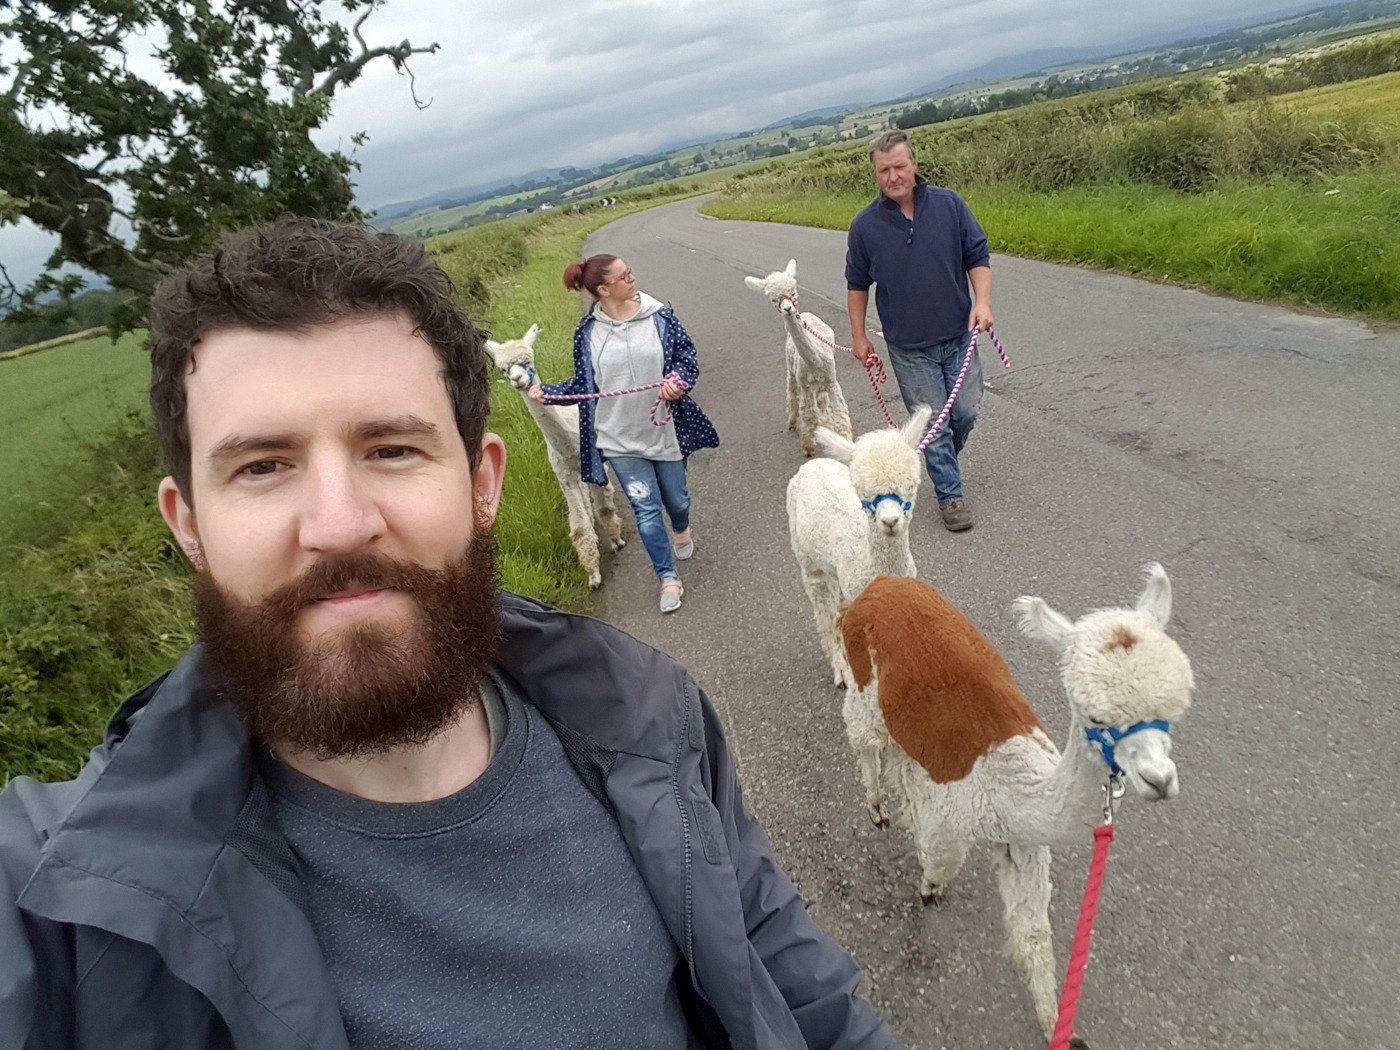 Alpaca trekking at The Alpaca Trekking Centre Stirling (2)